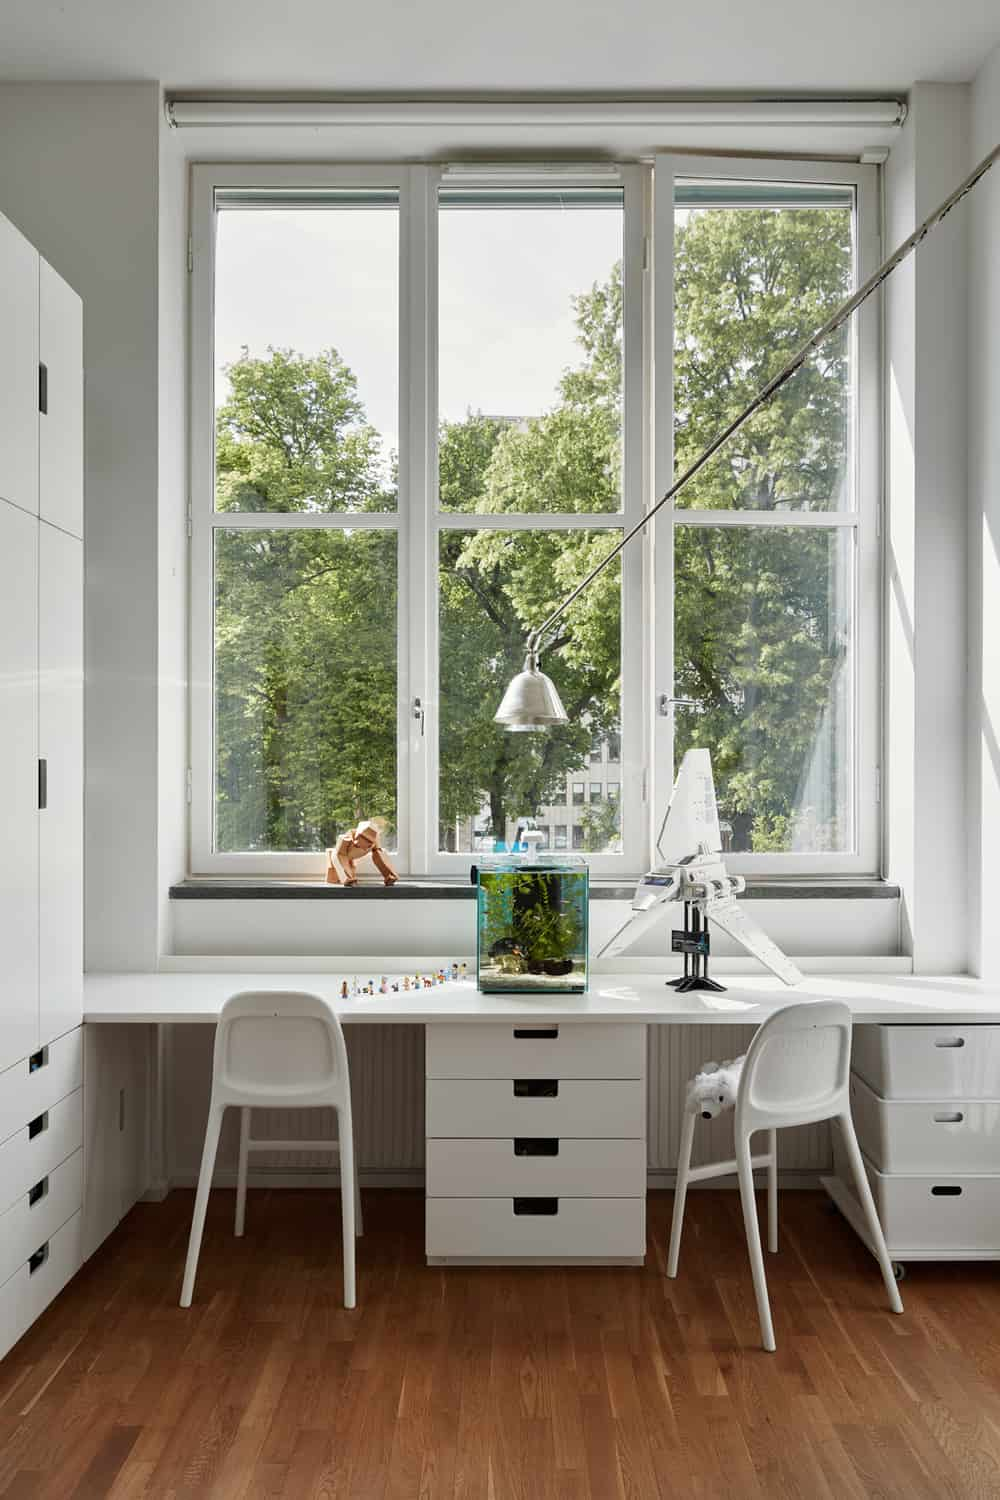 Scandinavian style for a family home